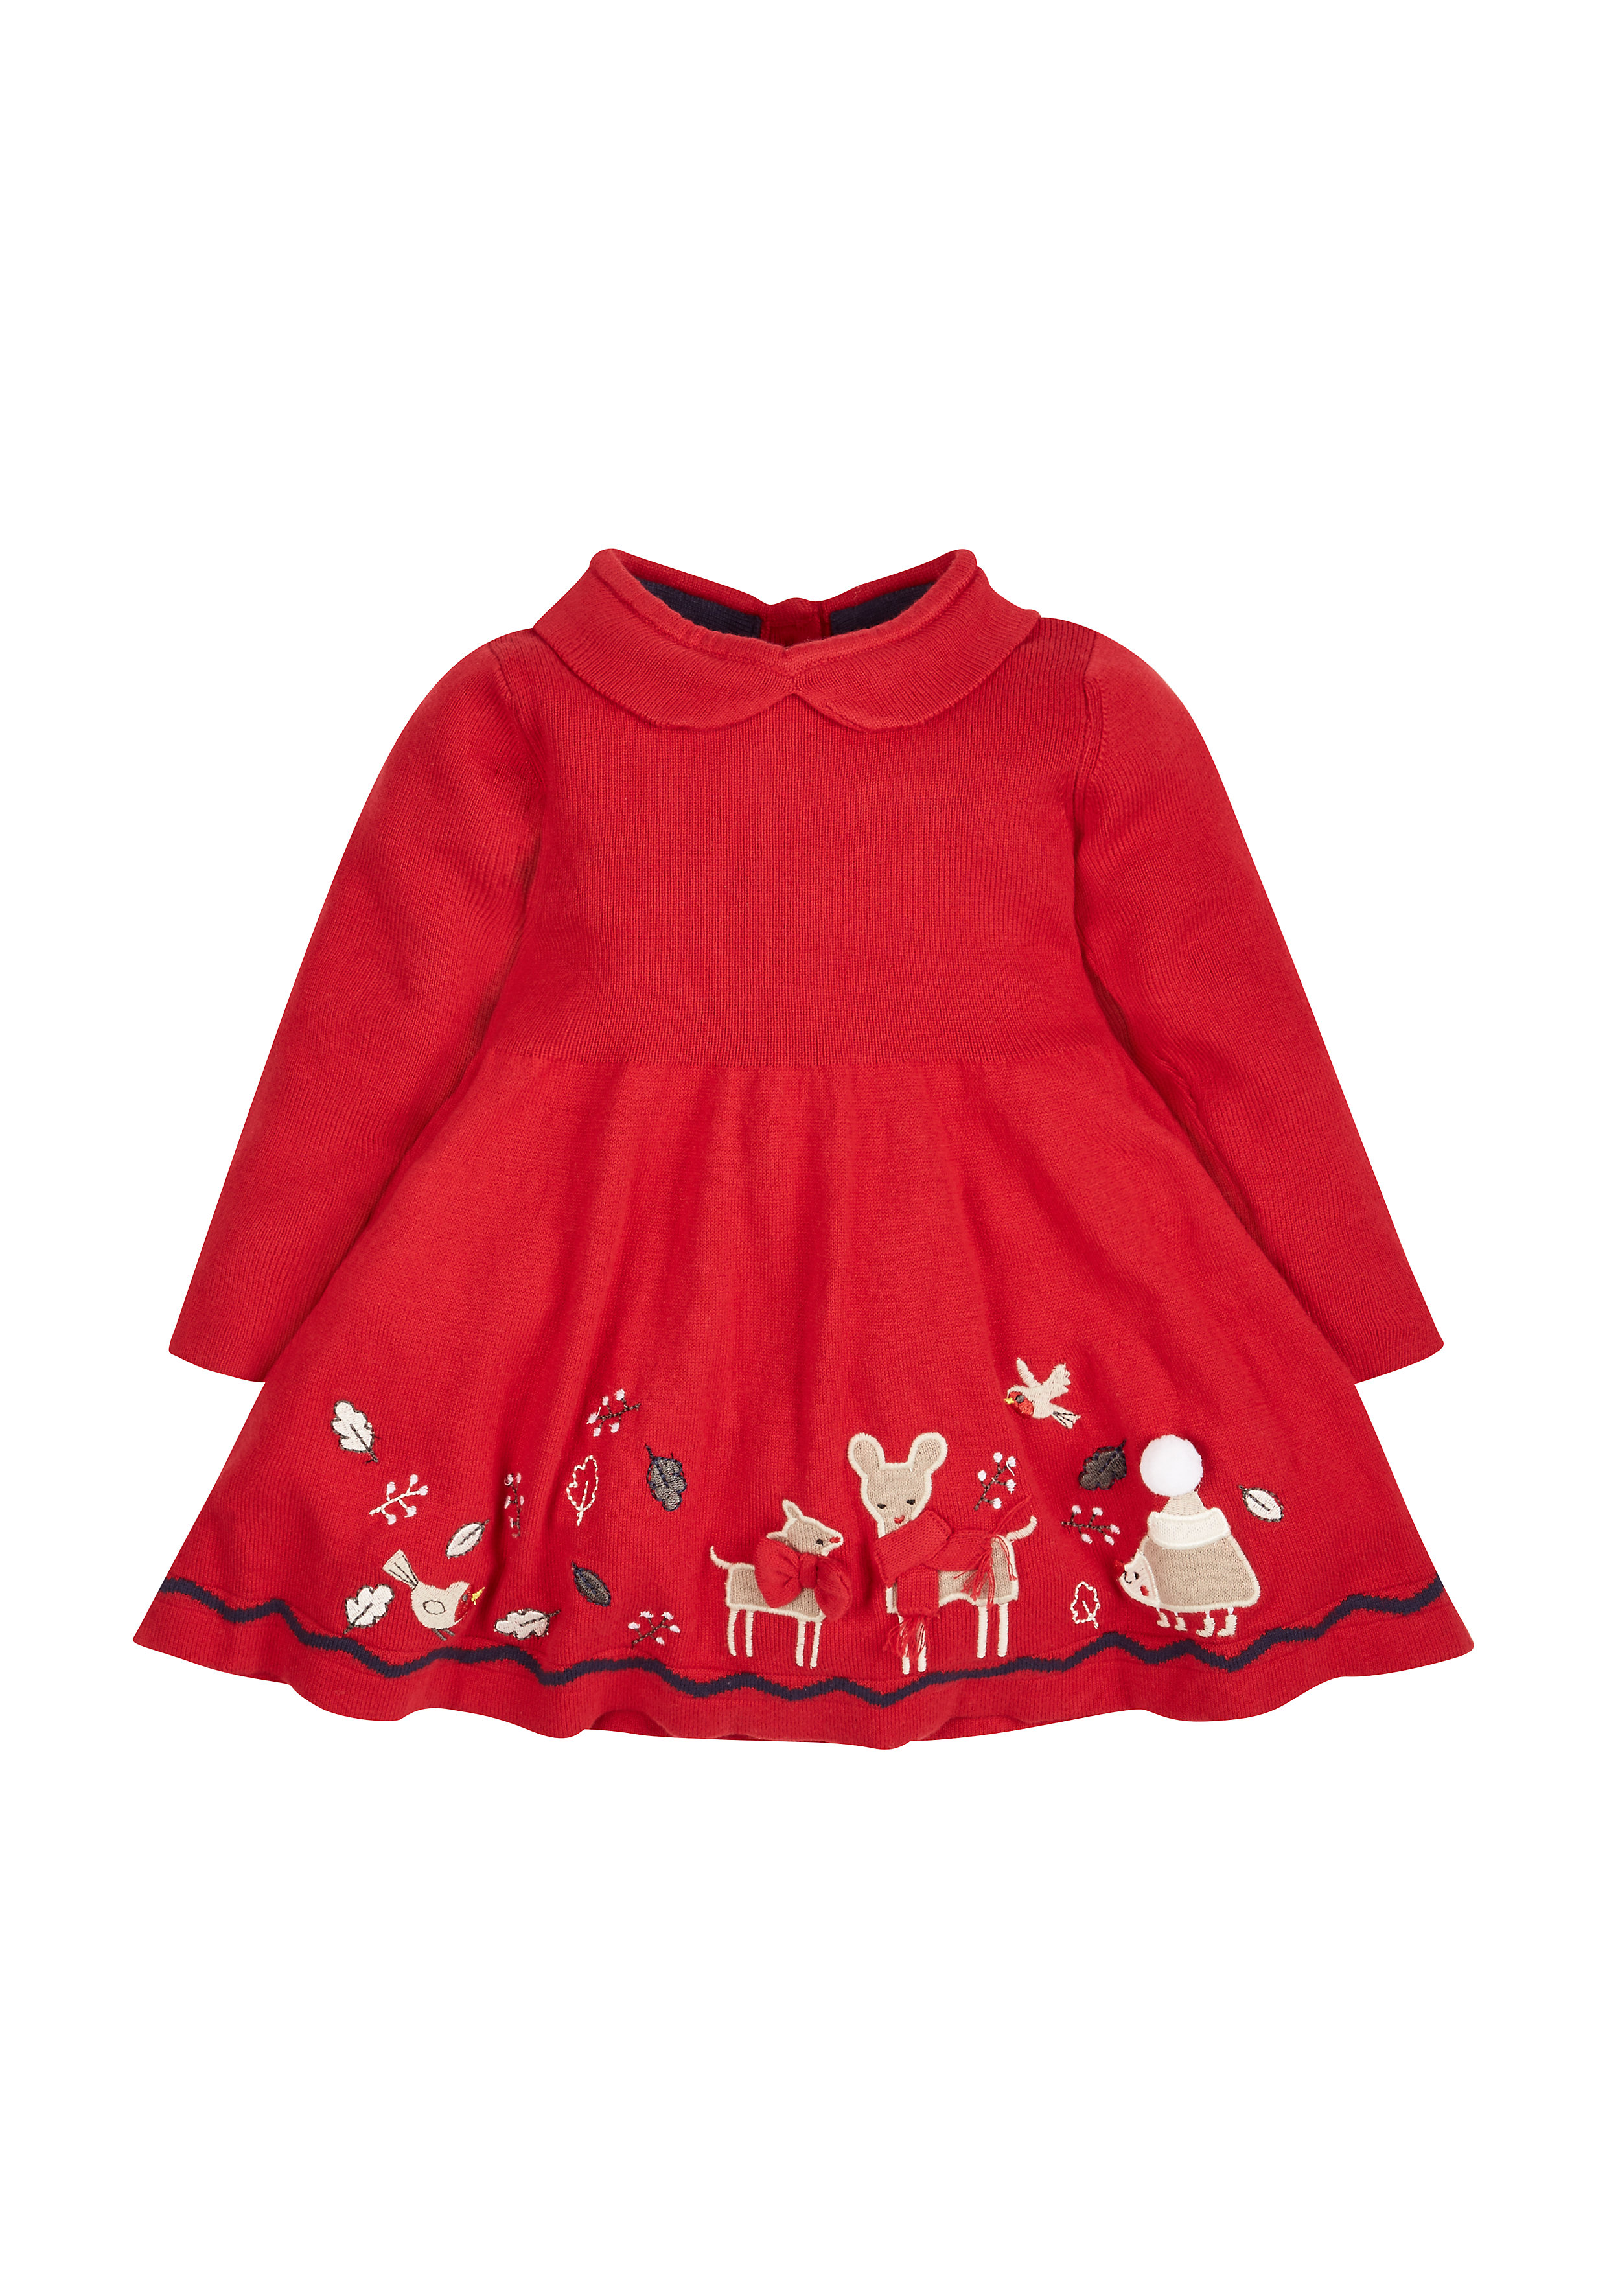 Mothercare   Girls Full Sleeves Dress 3D Bow Detail - Red